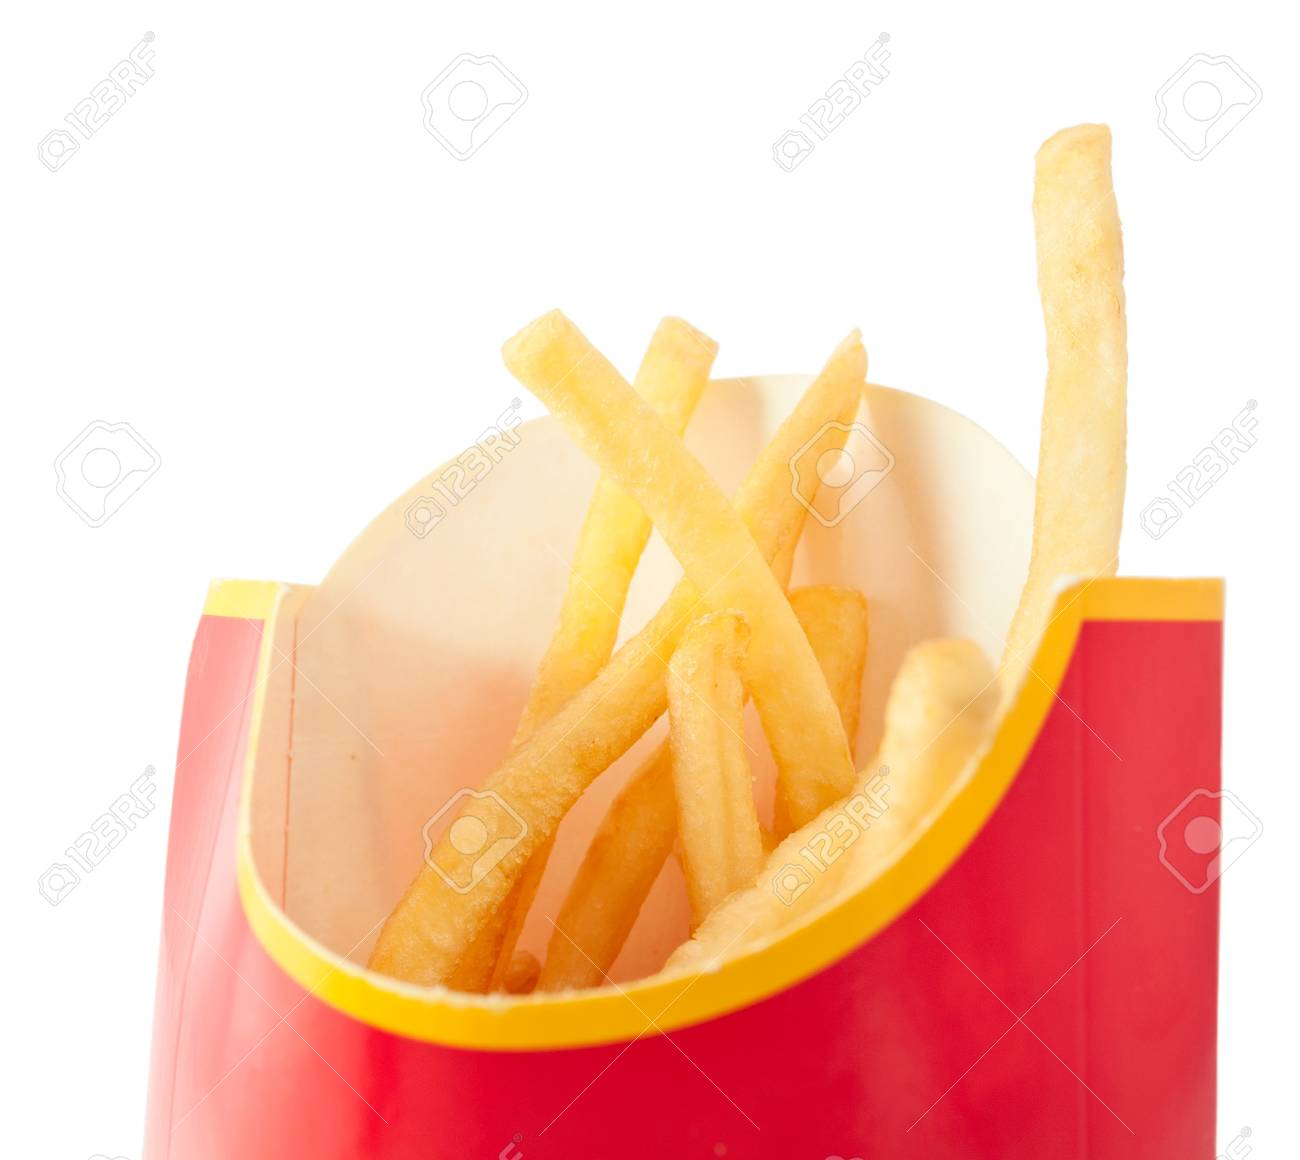 French fries on a white background Stock Photo - 8796583